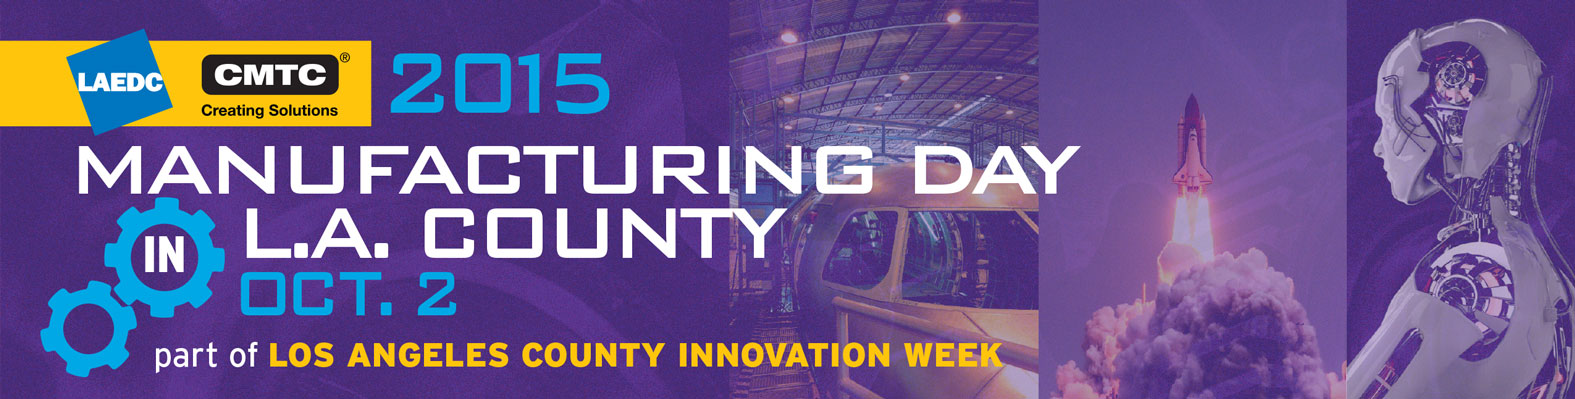 LAEDC-Manufacturing-Day-1576x400